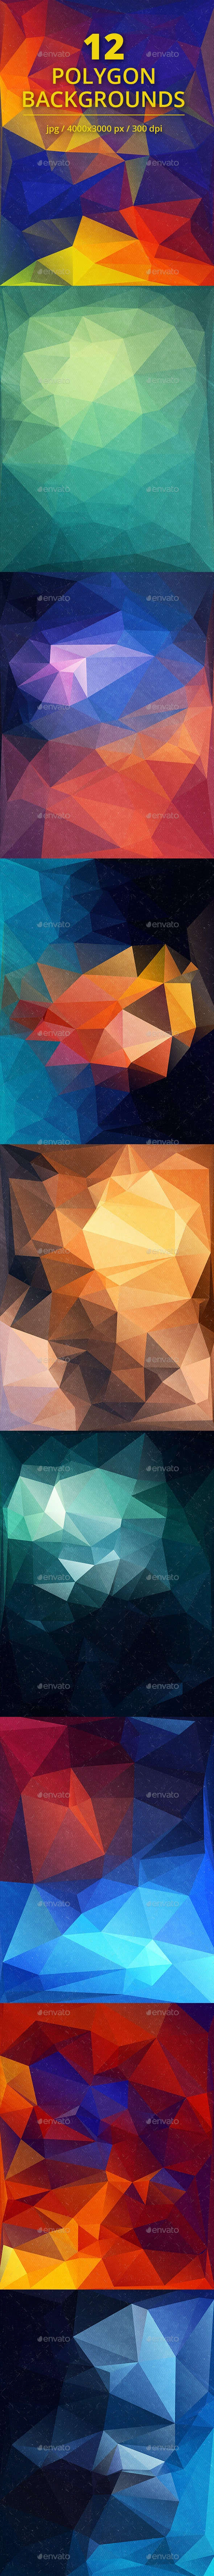 Polygon Backgrounds Vol.7 - Abstract Backgrounds